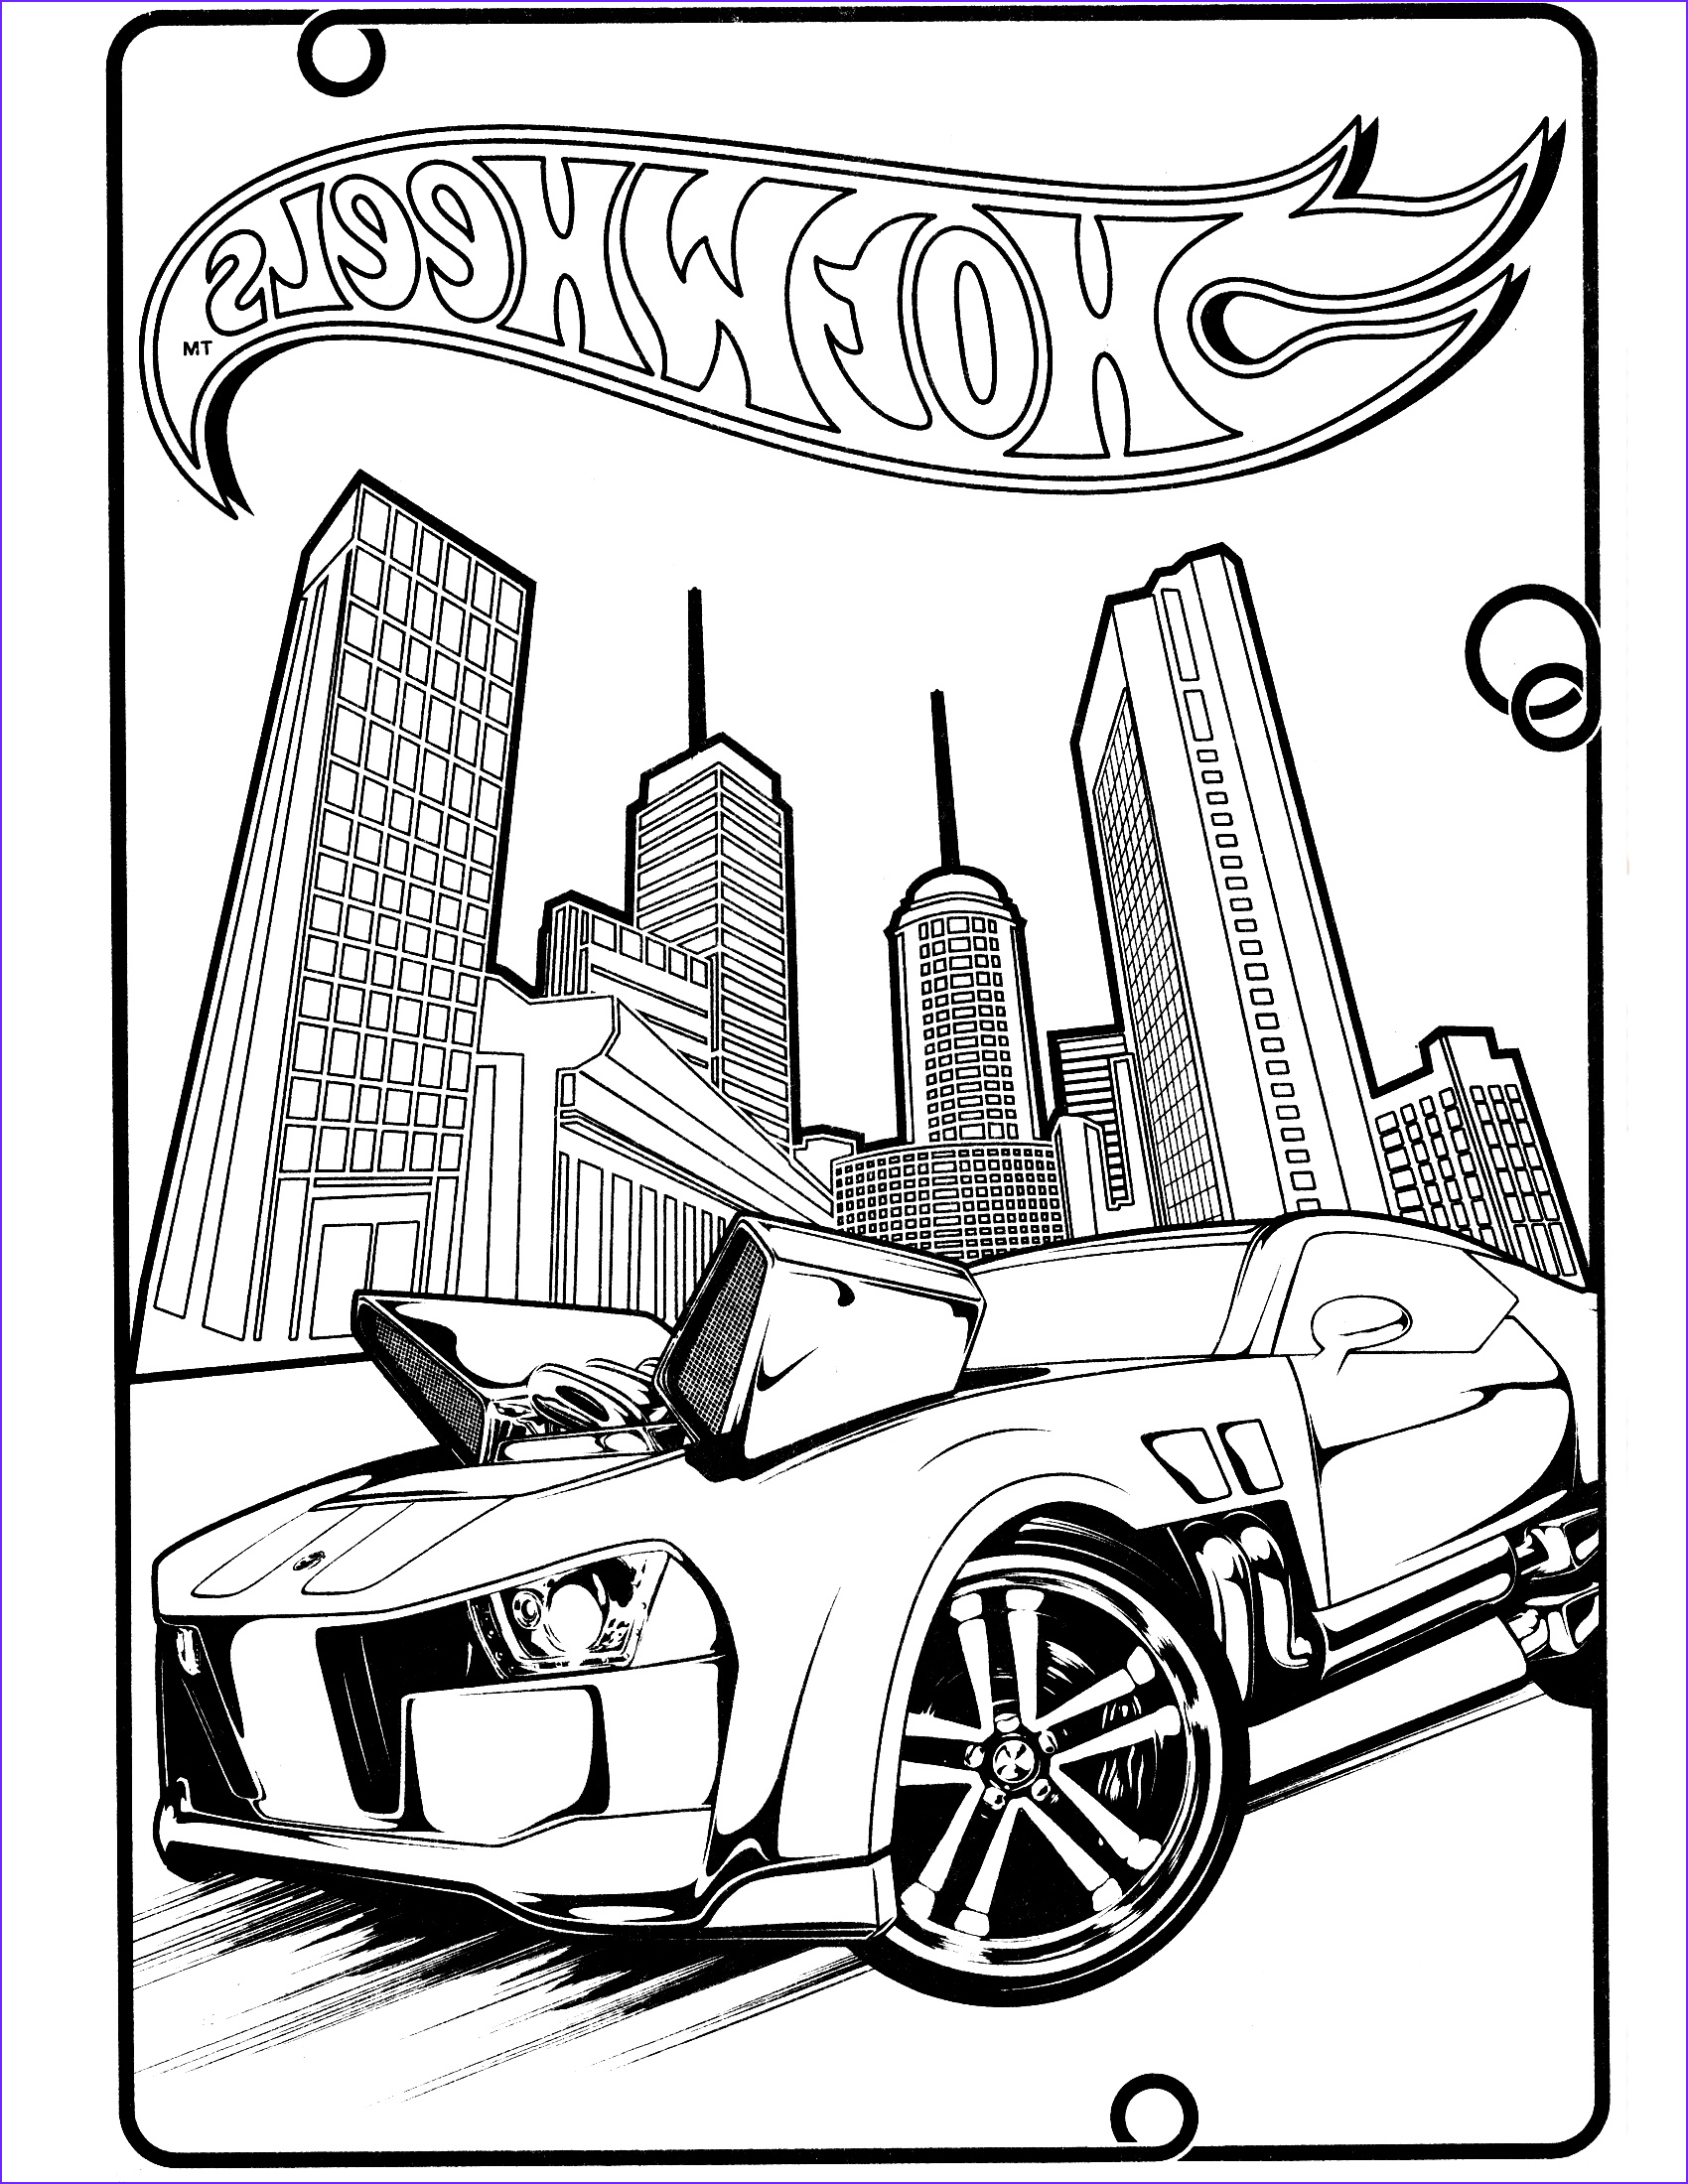 Hot Wheels Coloring Book Cool Photos Free Printable Hot Wheels Coloring Pages for Kids